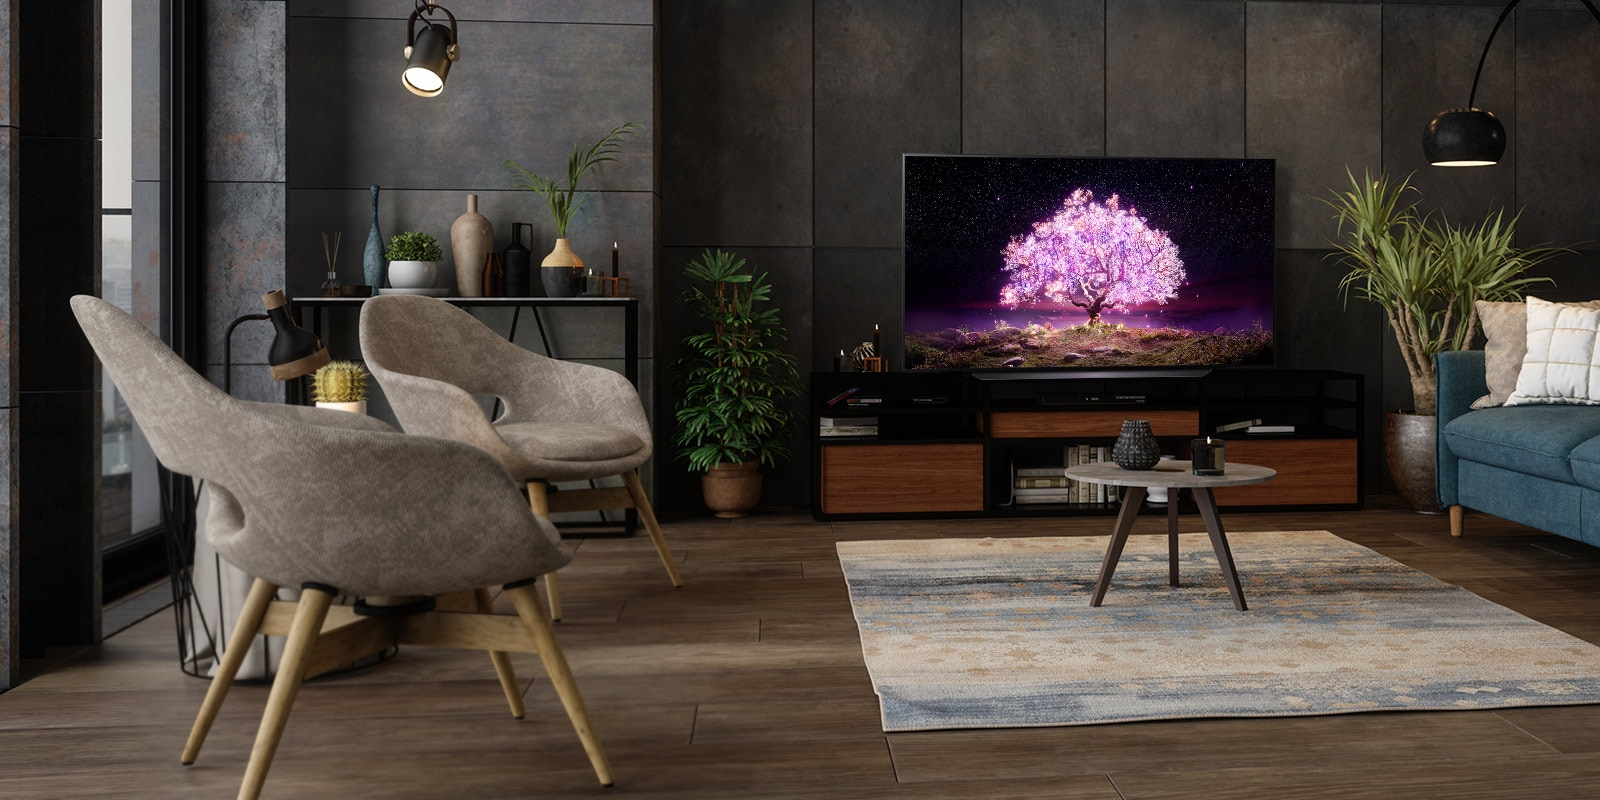 A TV showing a tree emitting purple light in a luxurious house setting